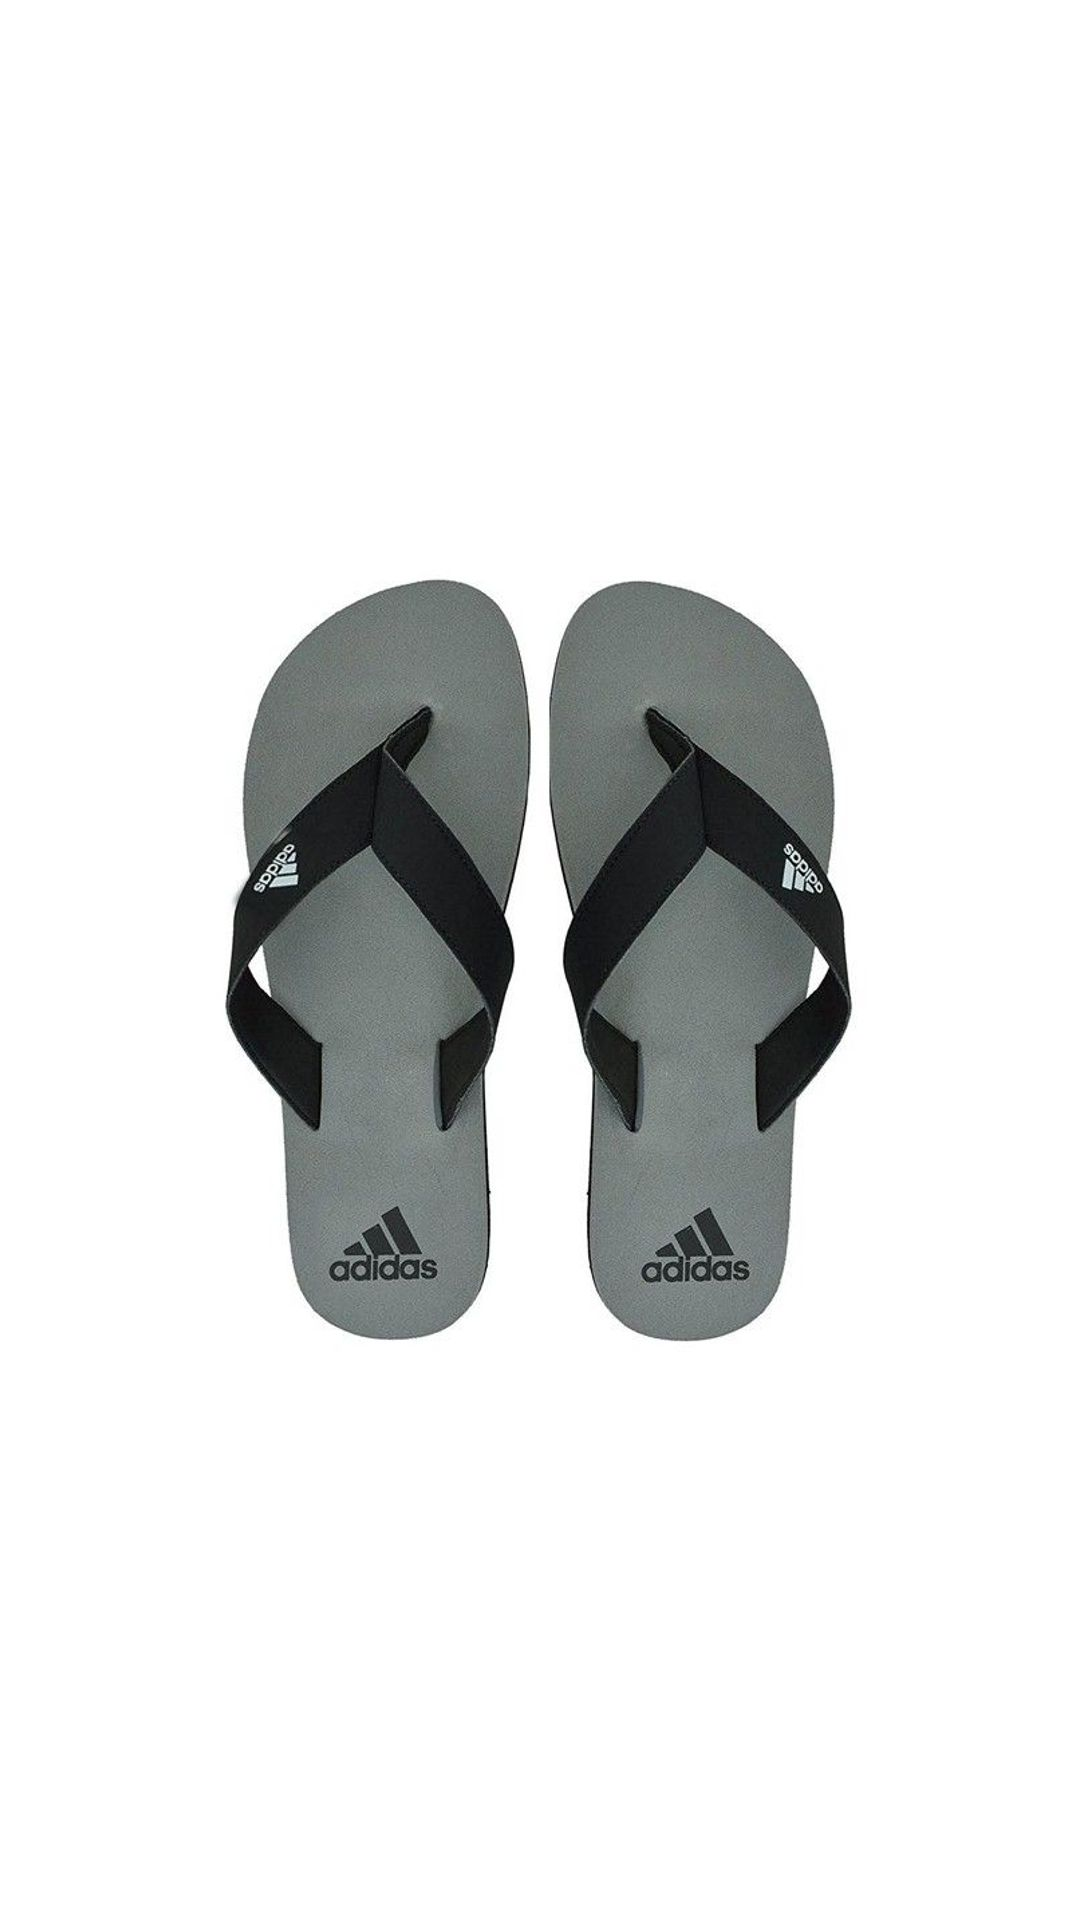 Adidas Men's Eezay Max Out Grey Men Flip-Flops